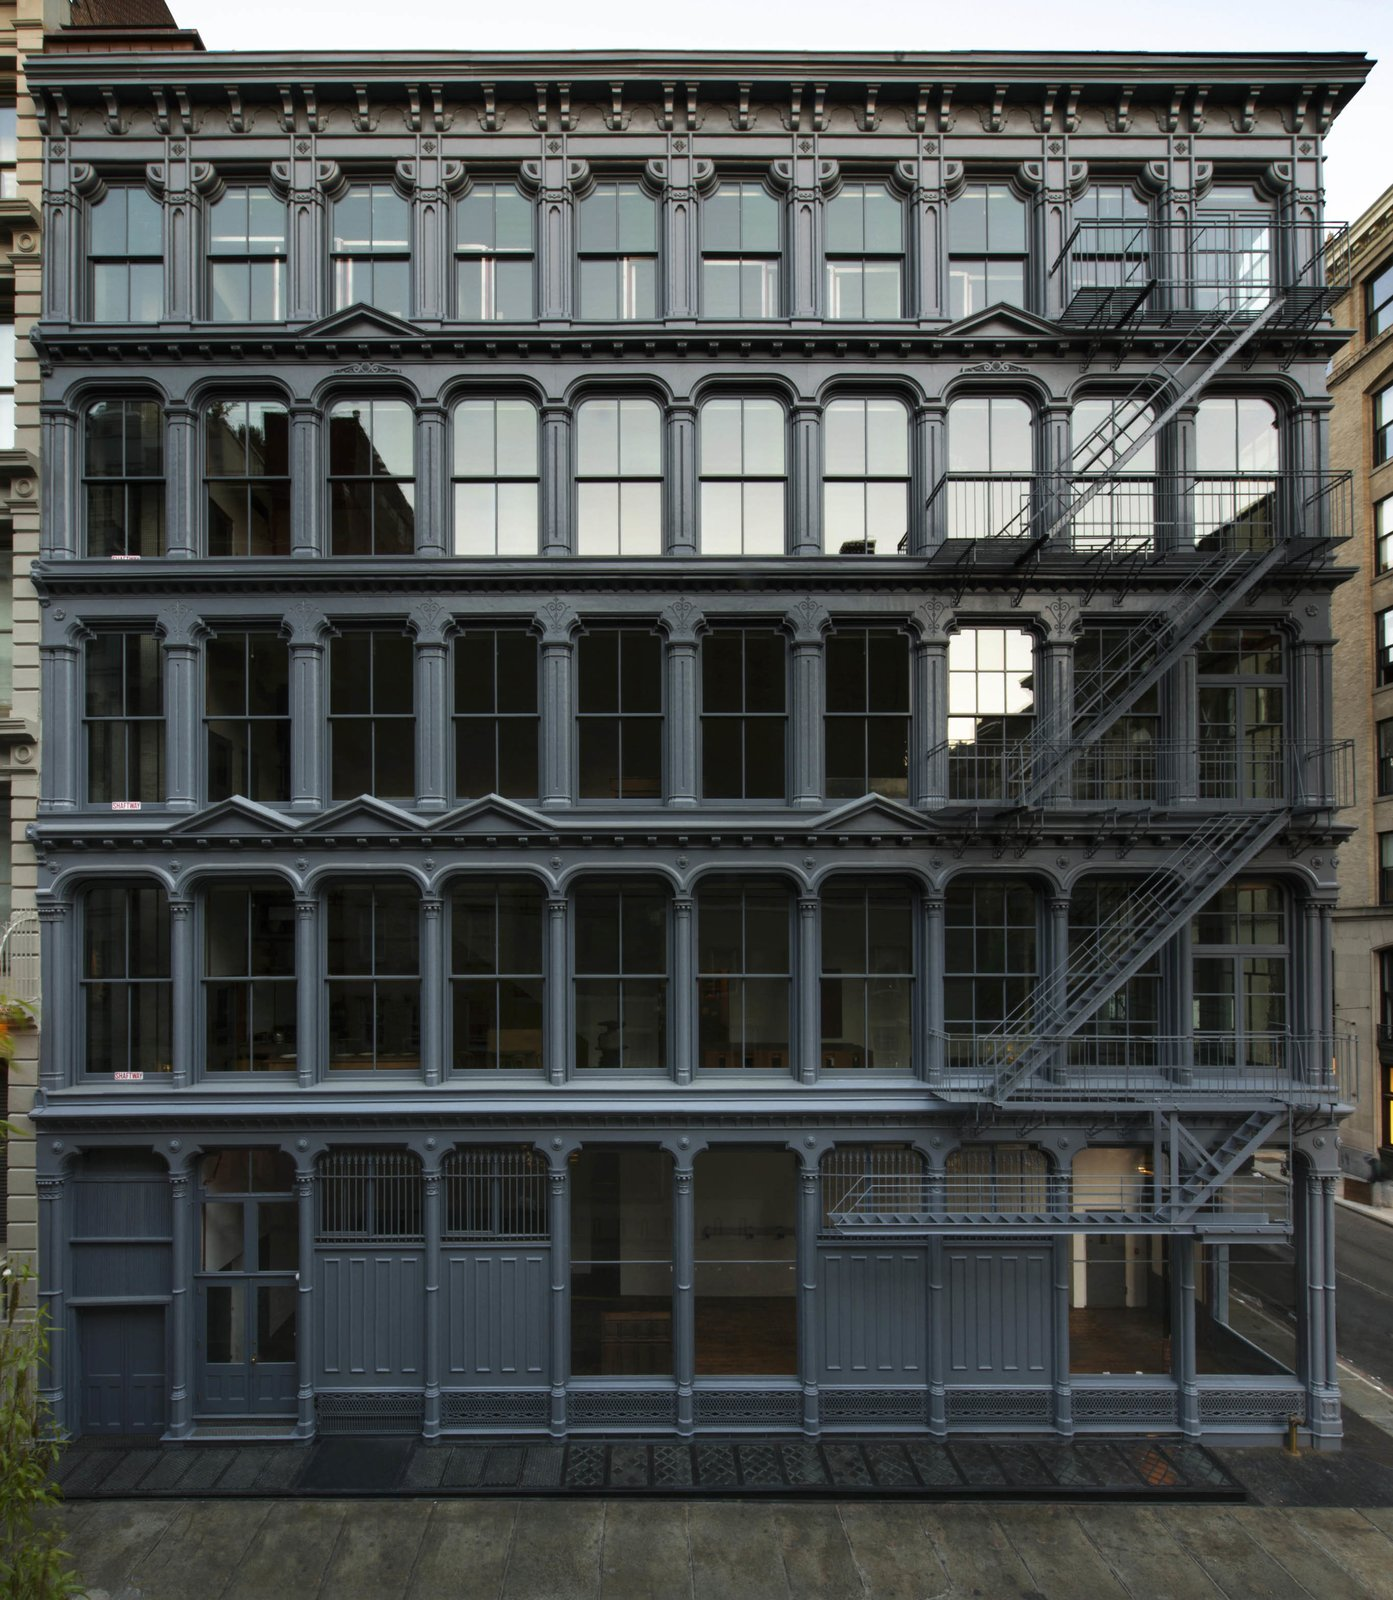 The Donald Judd Home and Studio in SoHo, which recently reopened following a resotration by Architecture Research Office and Walter B. Melvin Architects, will be the Building of the Day on October 20.  buildings by pulltab from Archtober: A Monthlong Celebration of Design and Architecture Returns to New York City